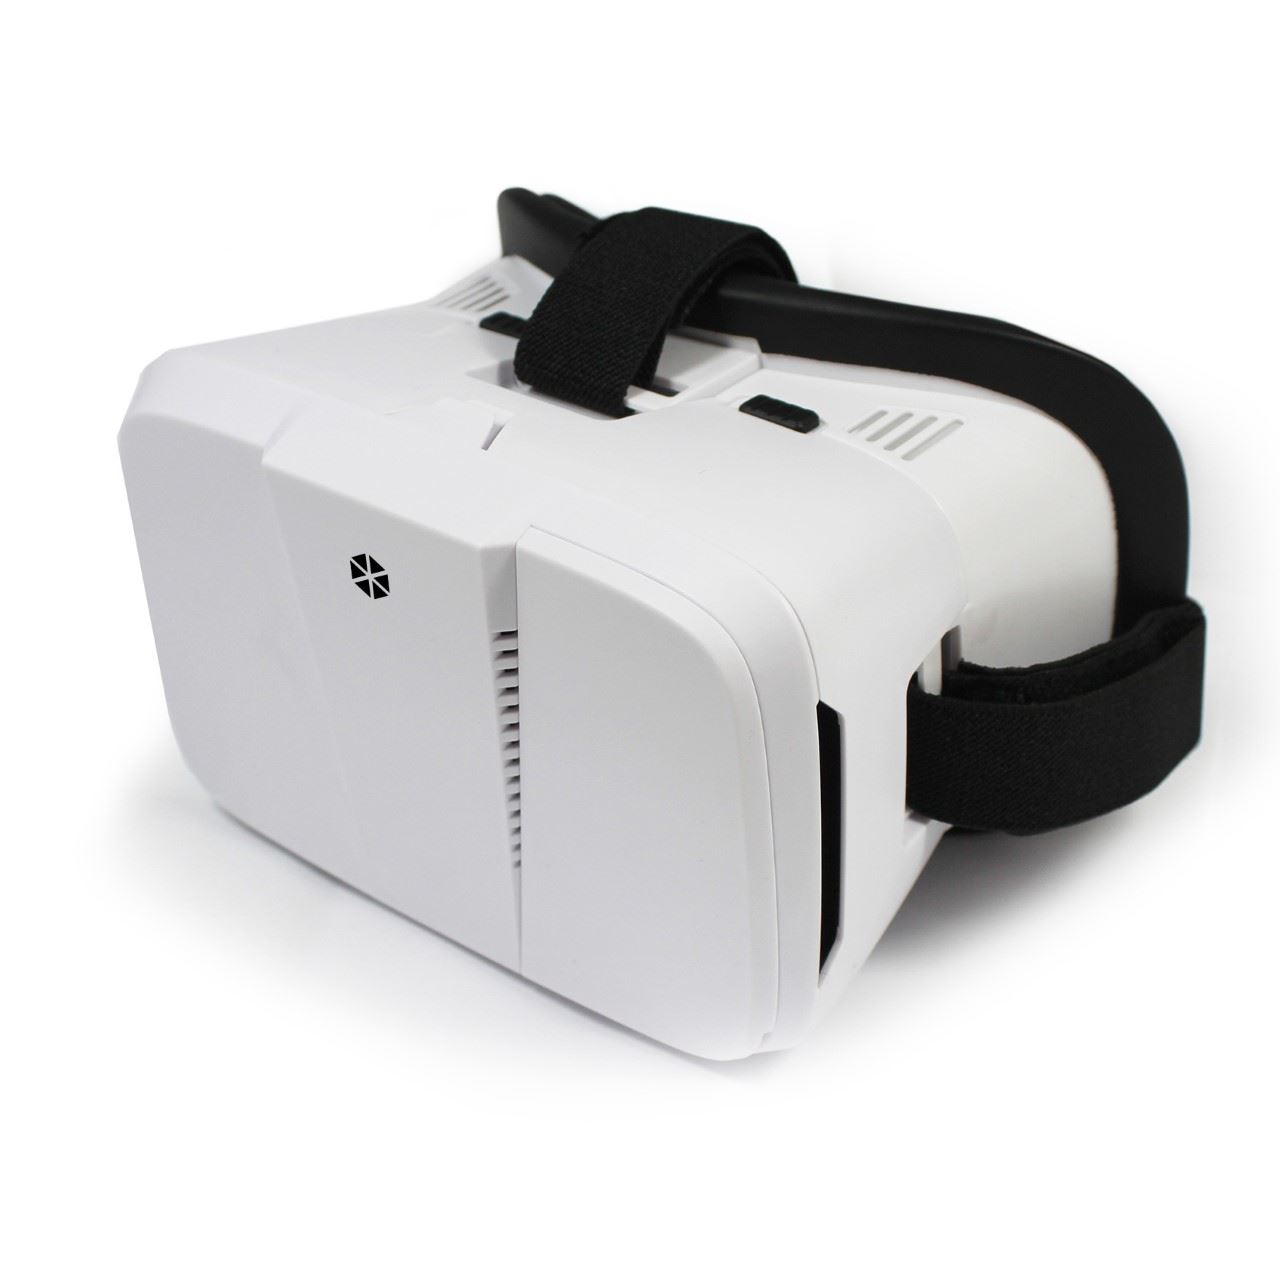 3d Glasses Video Headset Vr Virtual Reality For Samsung Iphone Smartphones White